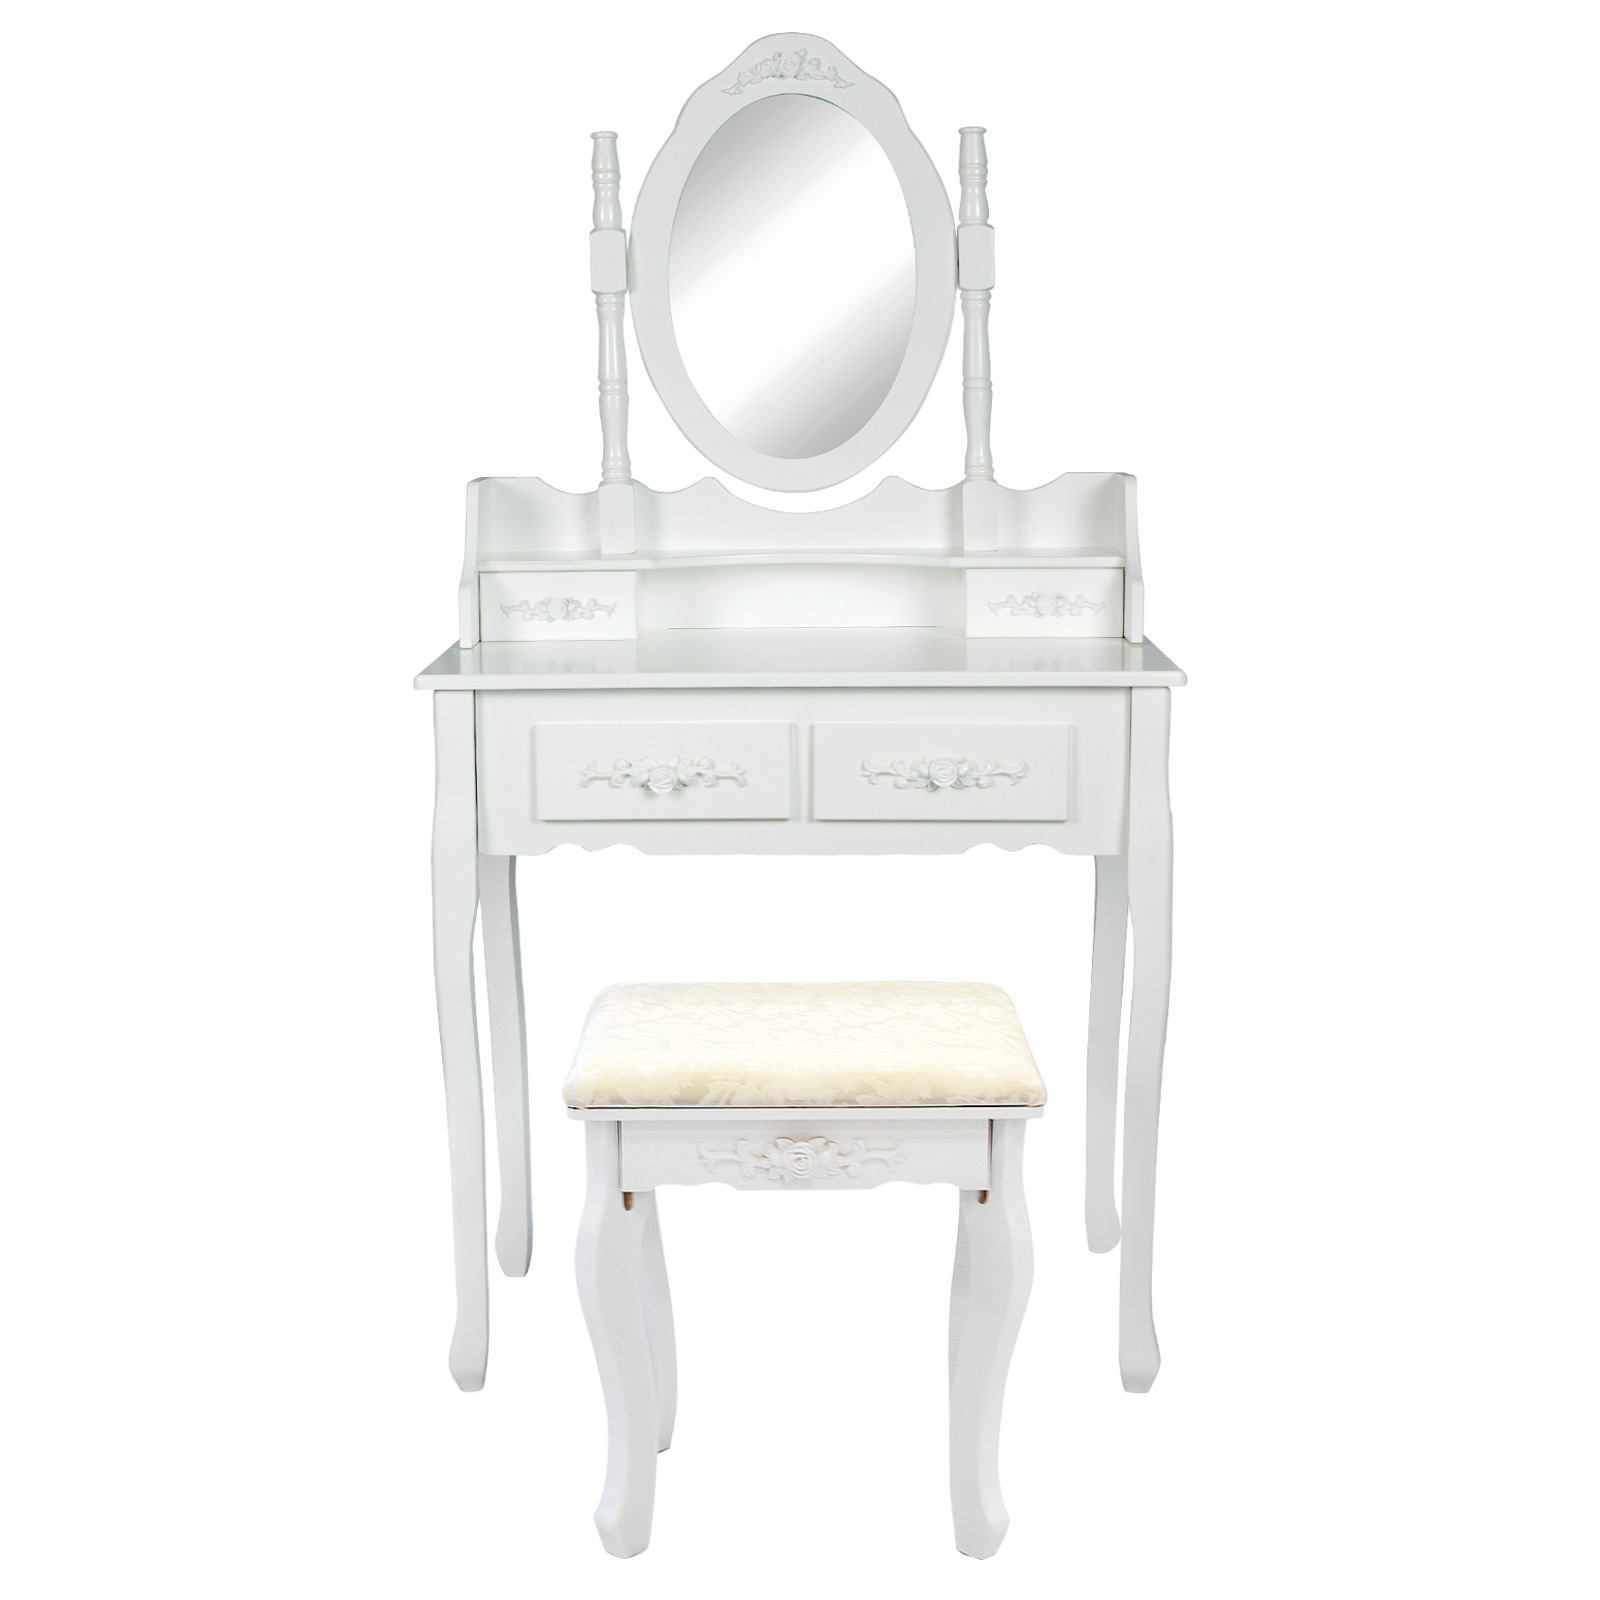 Dressing Table 4 Drawers 1 Mirror - ANGELLA WHITE